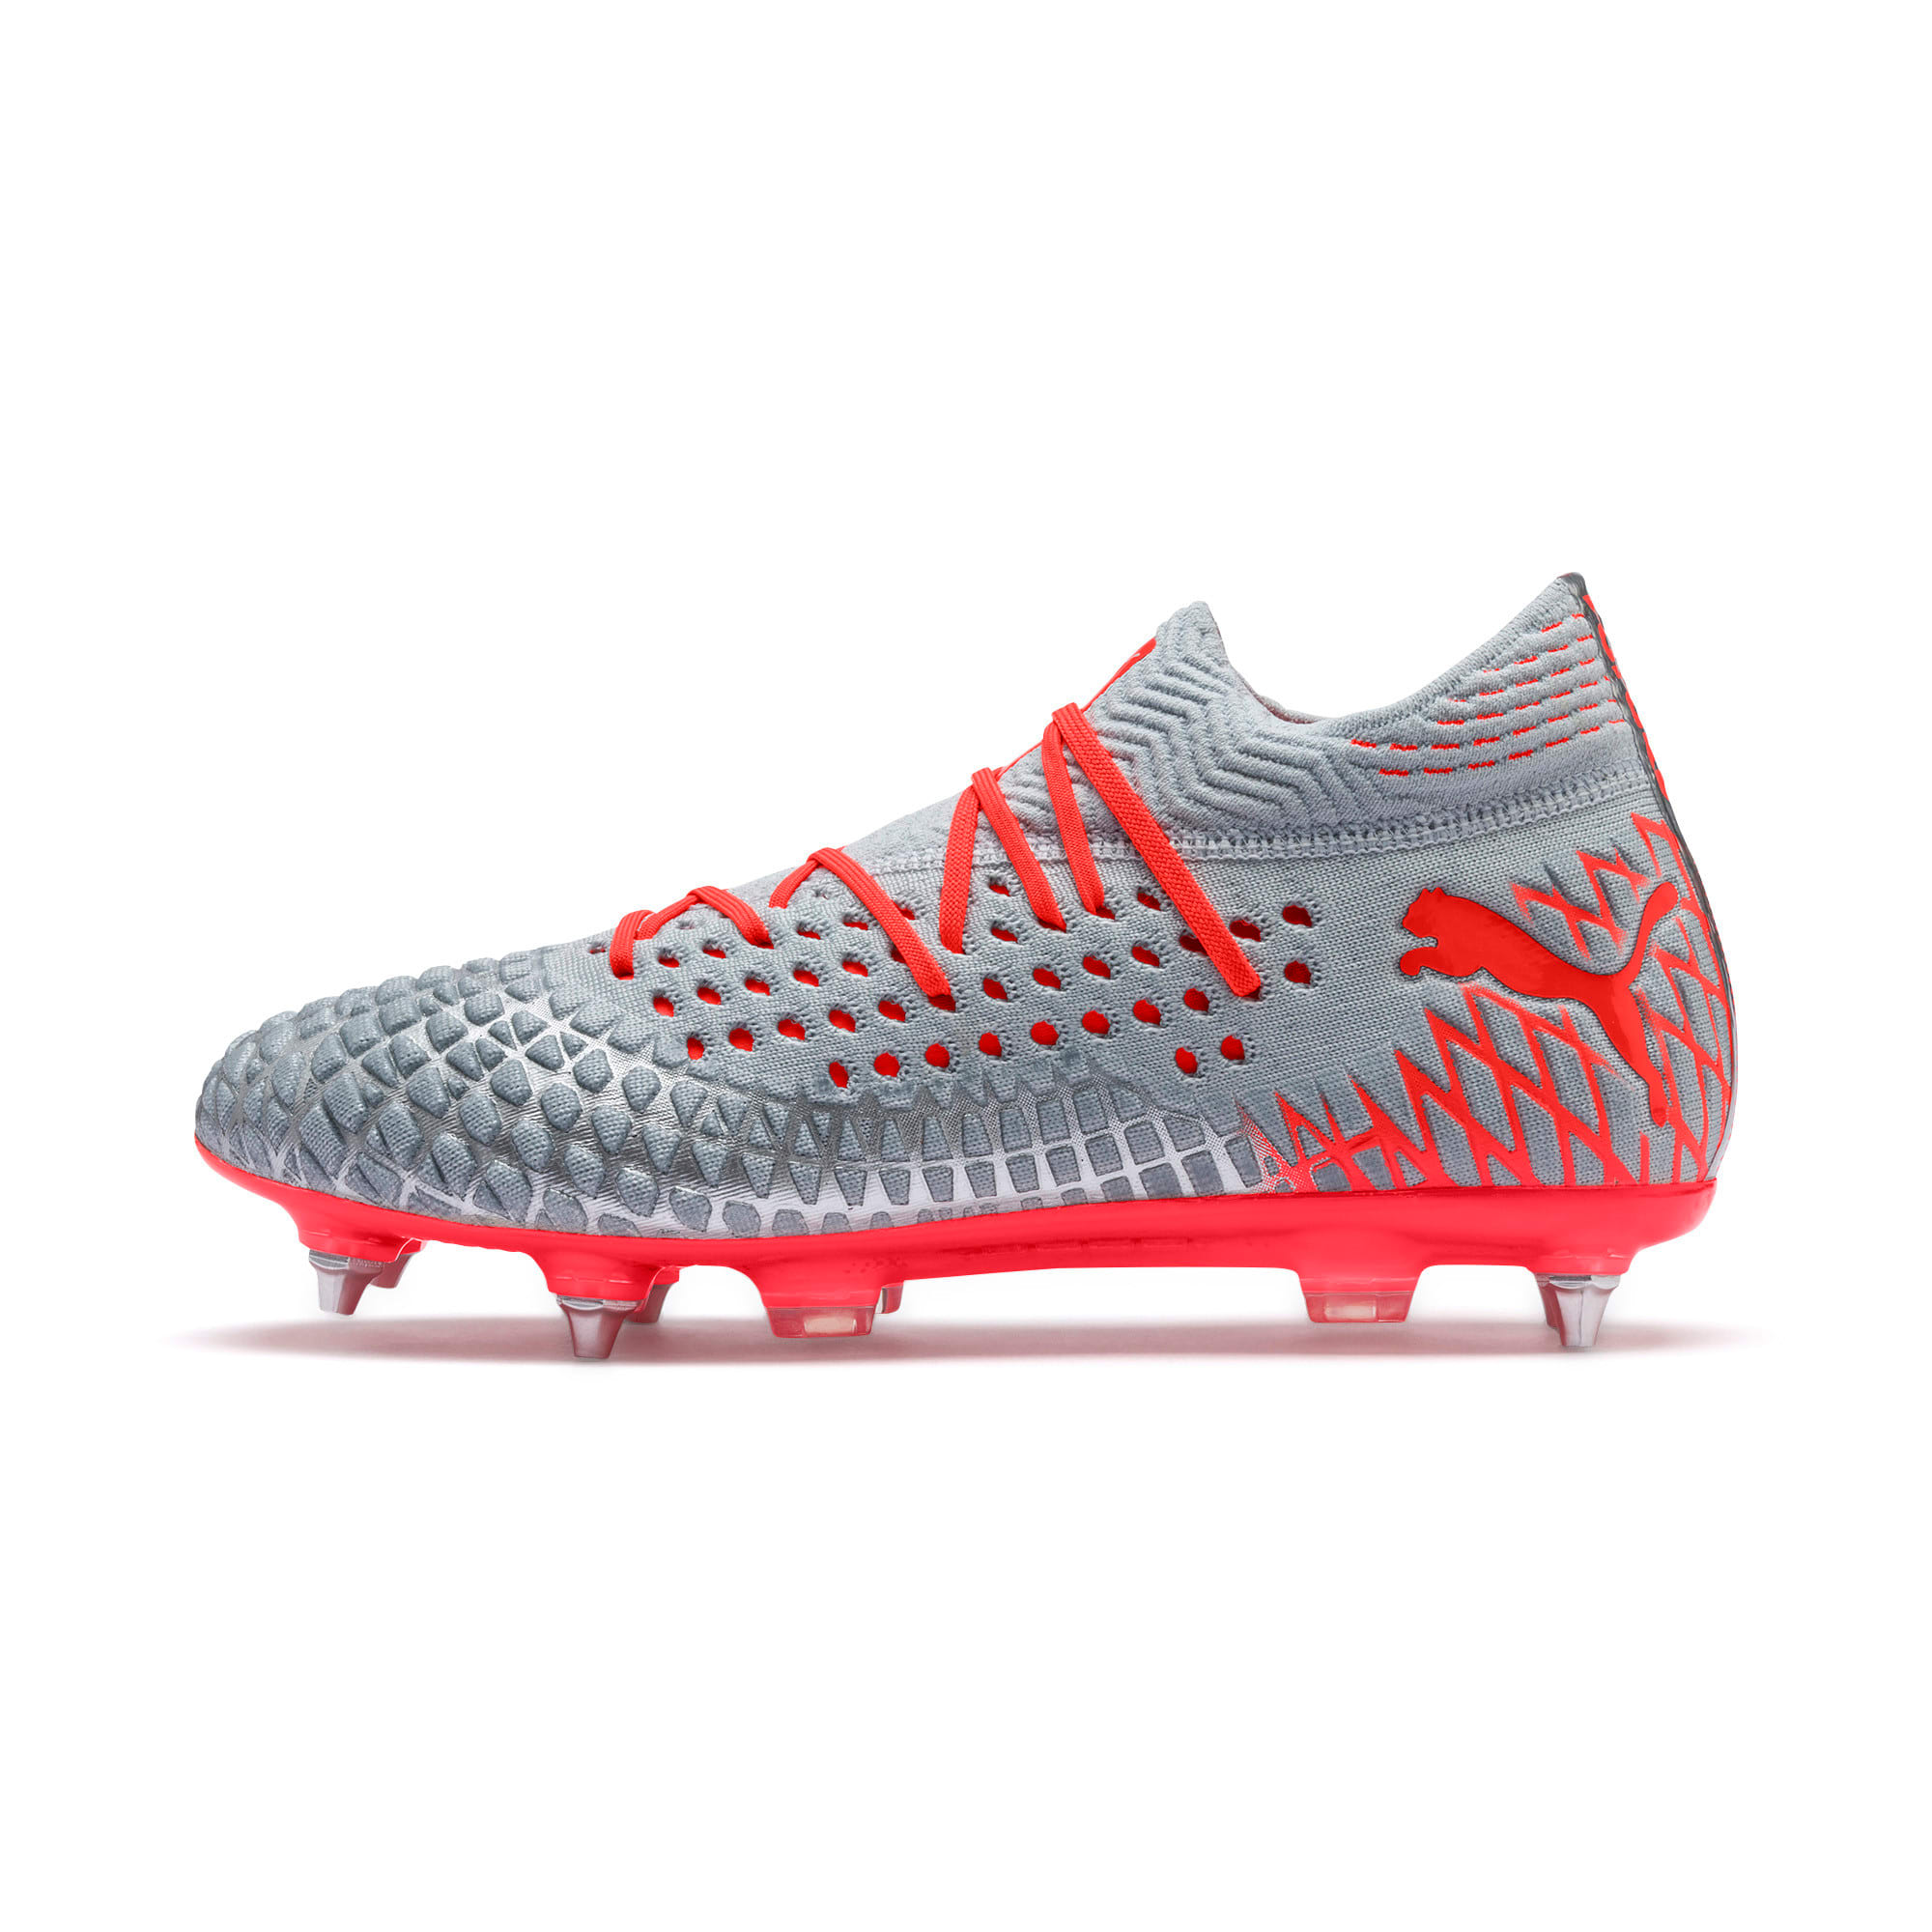 Thumbnail 1 of FUTURE 4.1 NETFIT MxSG Football Boots, Blue-Nrgy Red-High Risk Red, medium